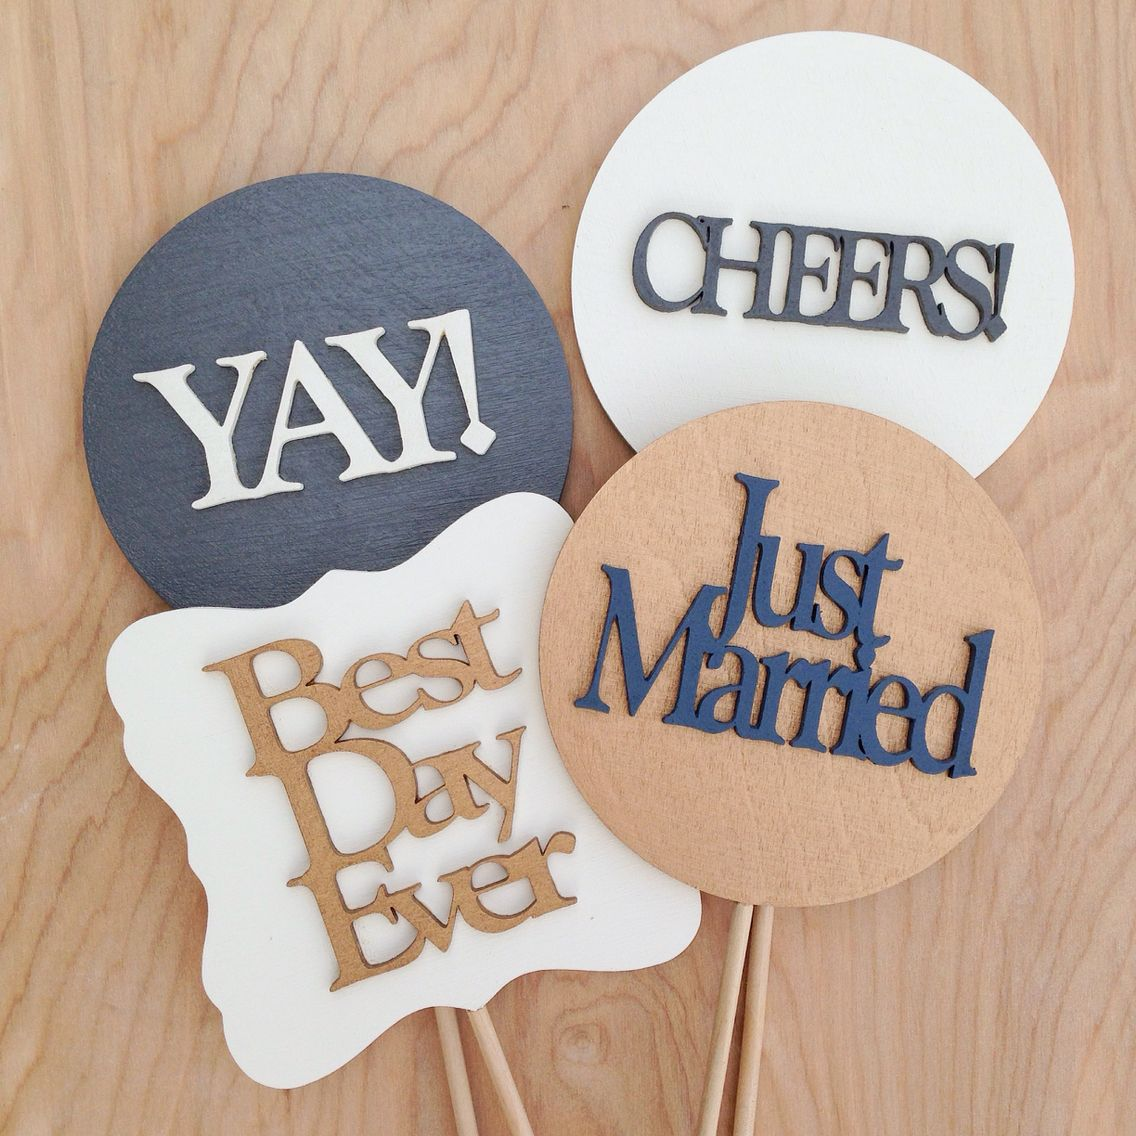 Custom photo booth props available via yaydetails etsy